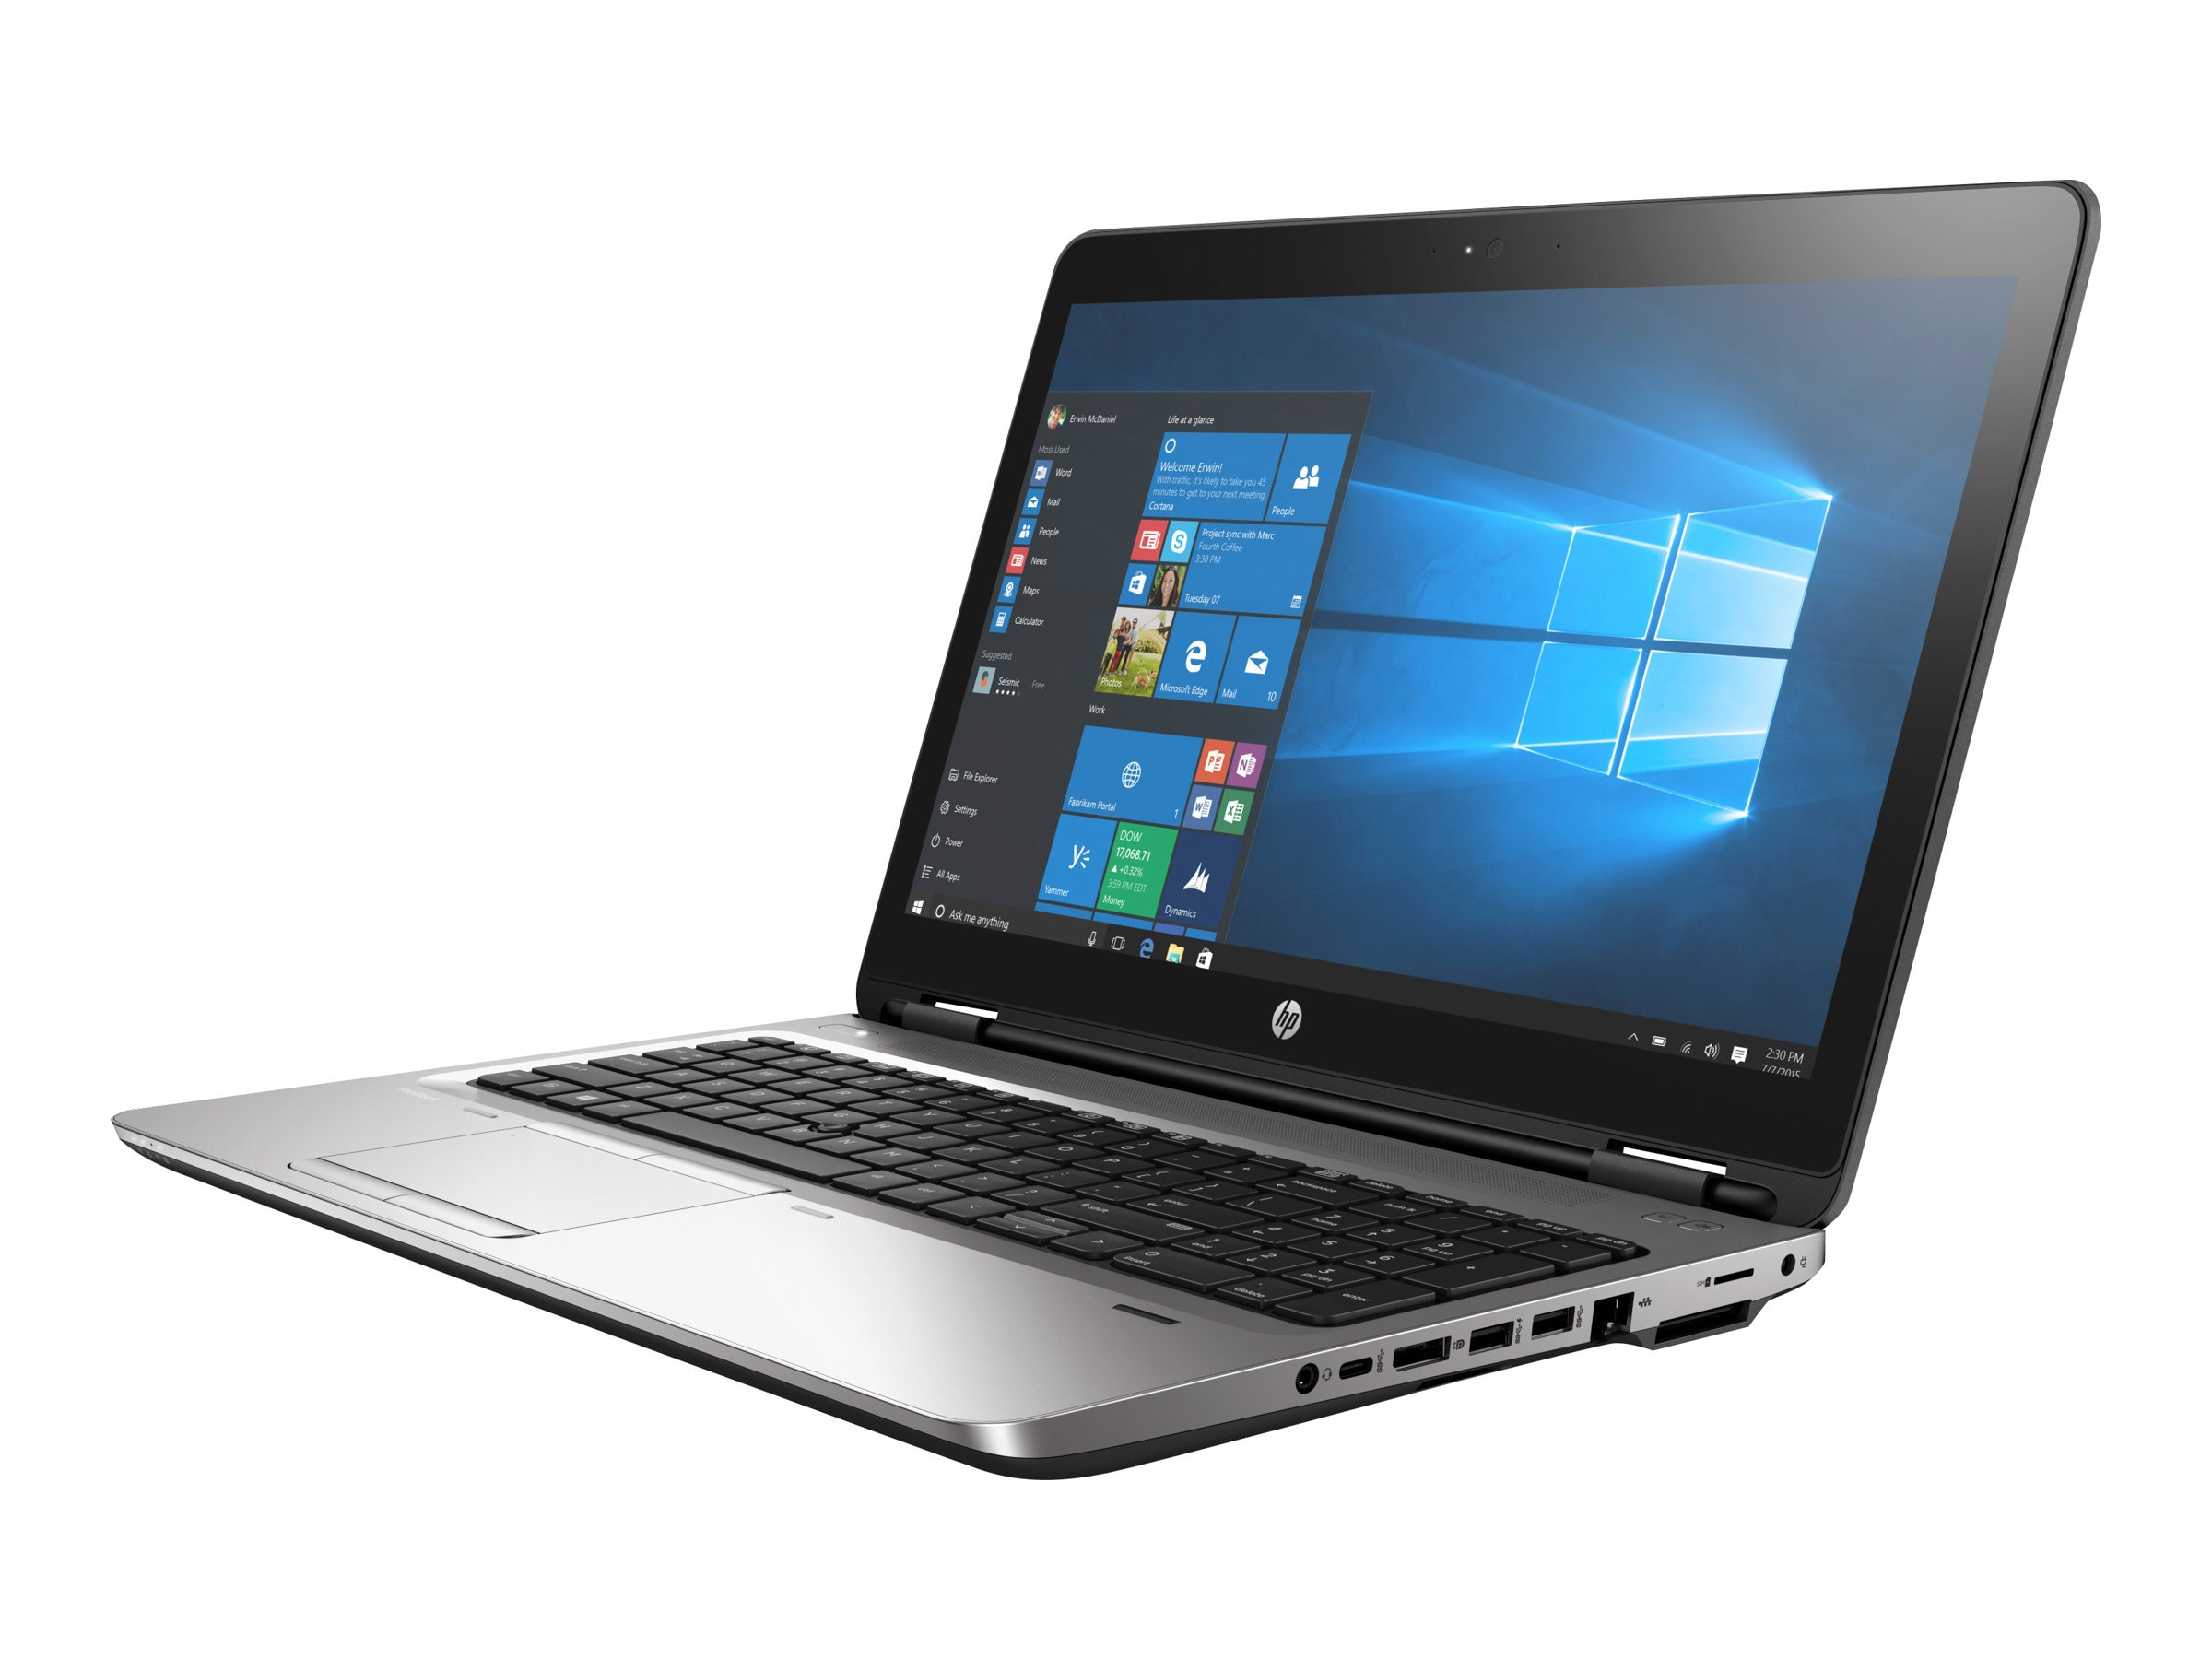 HP ProBook 655 G2 1.6GHz A8 Pro 15.6in display